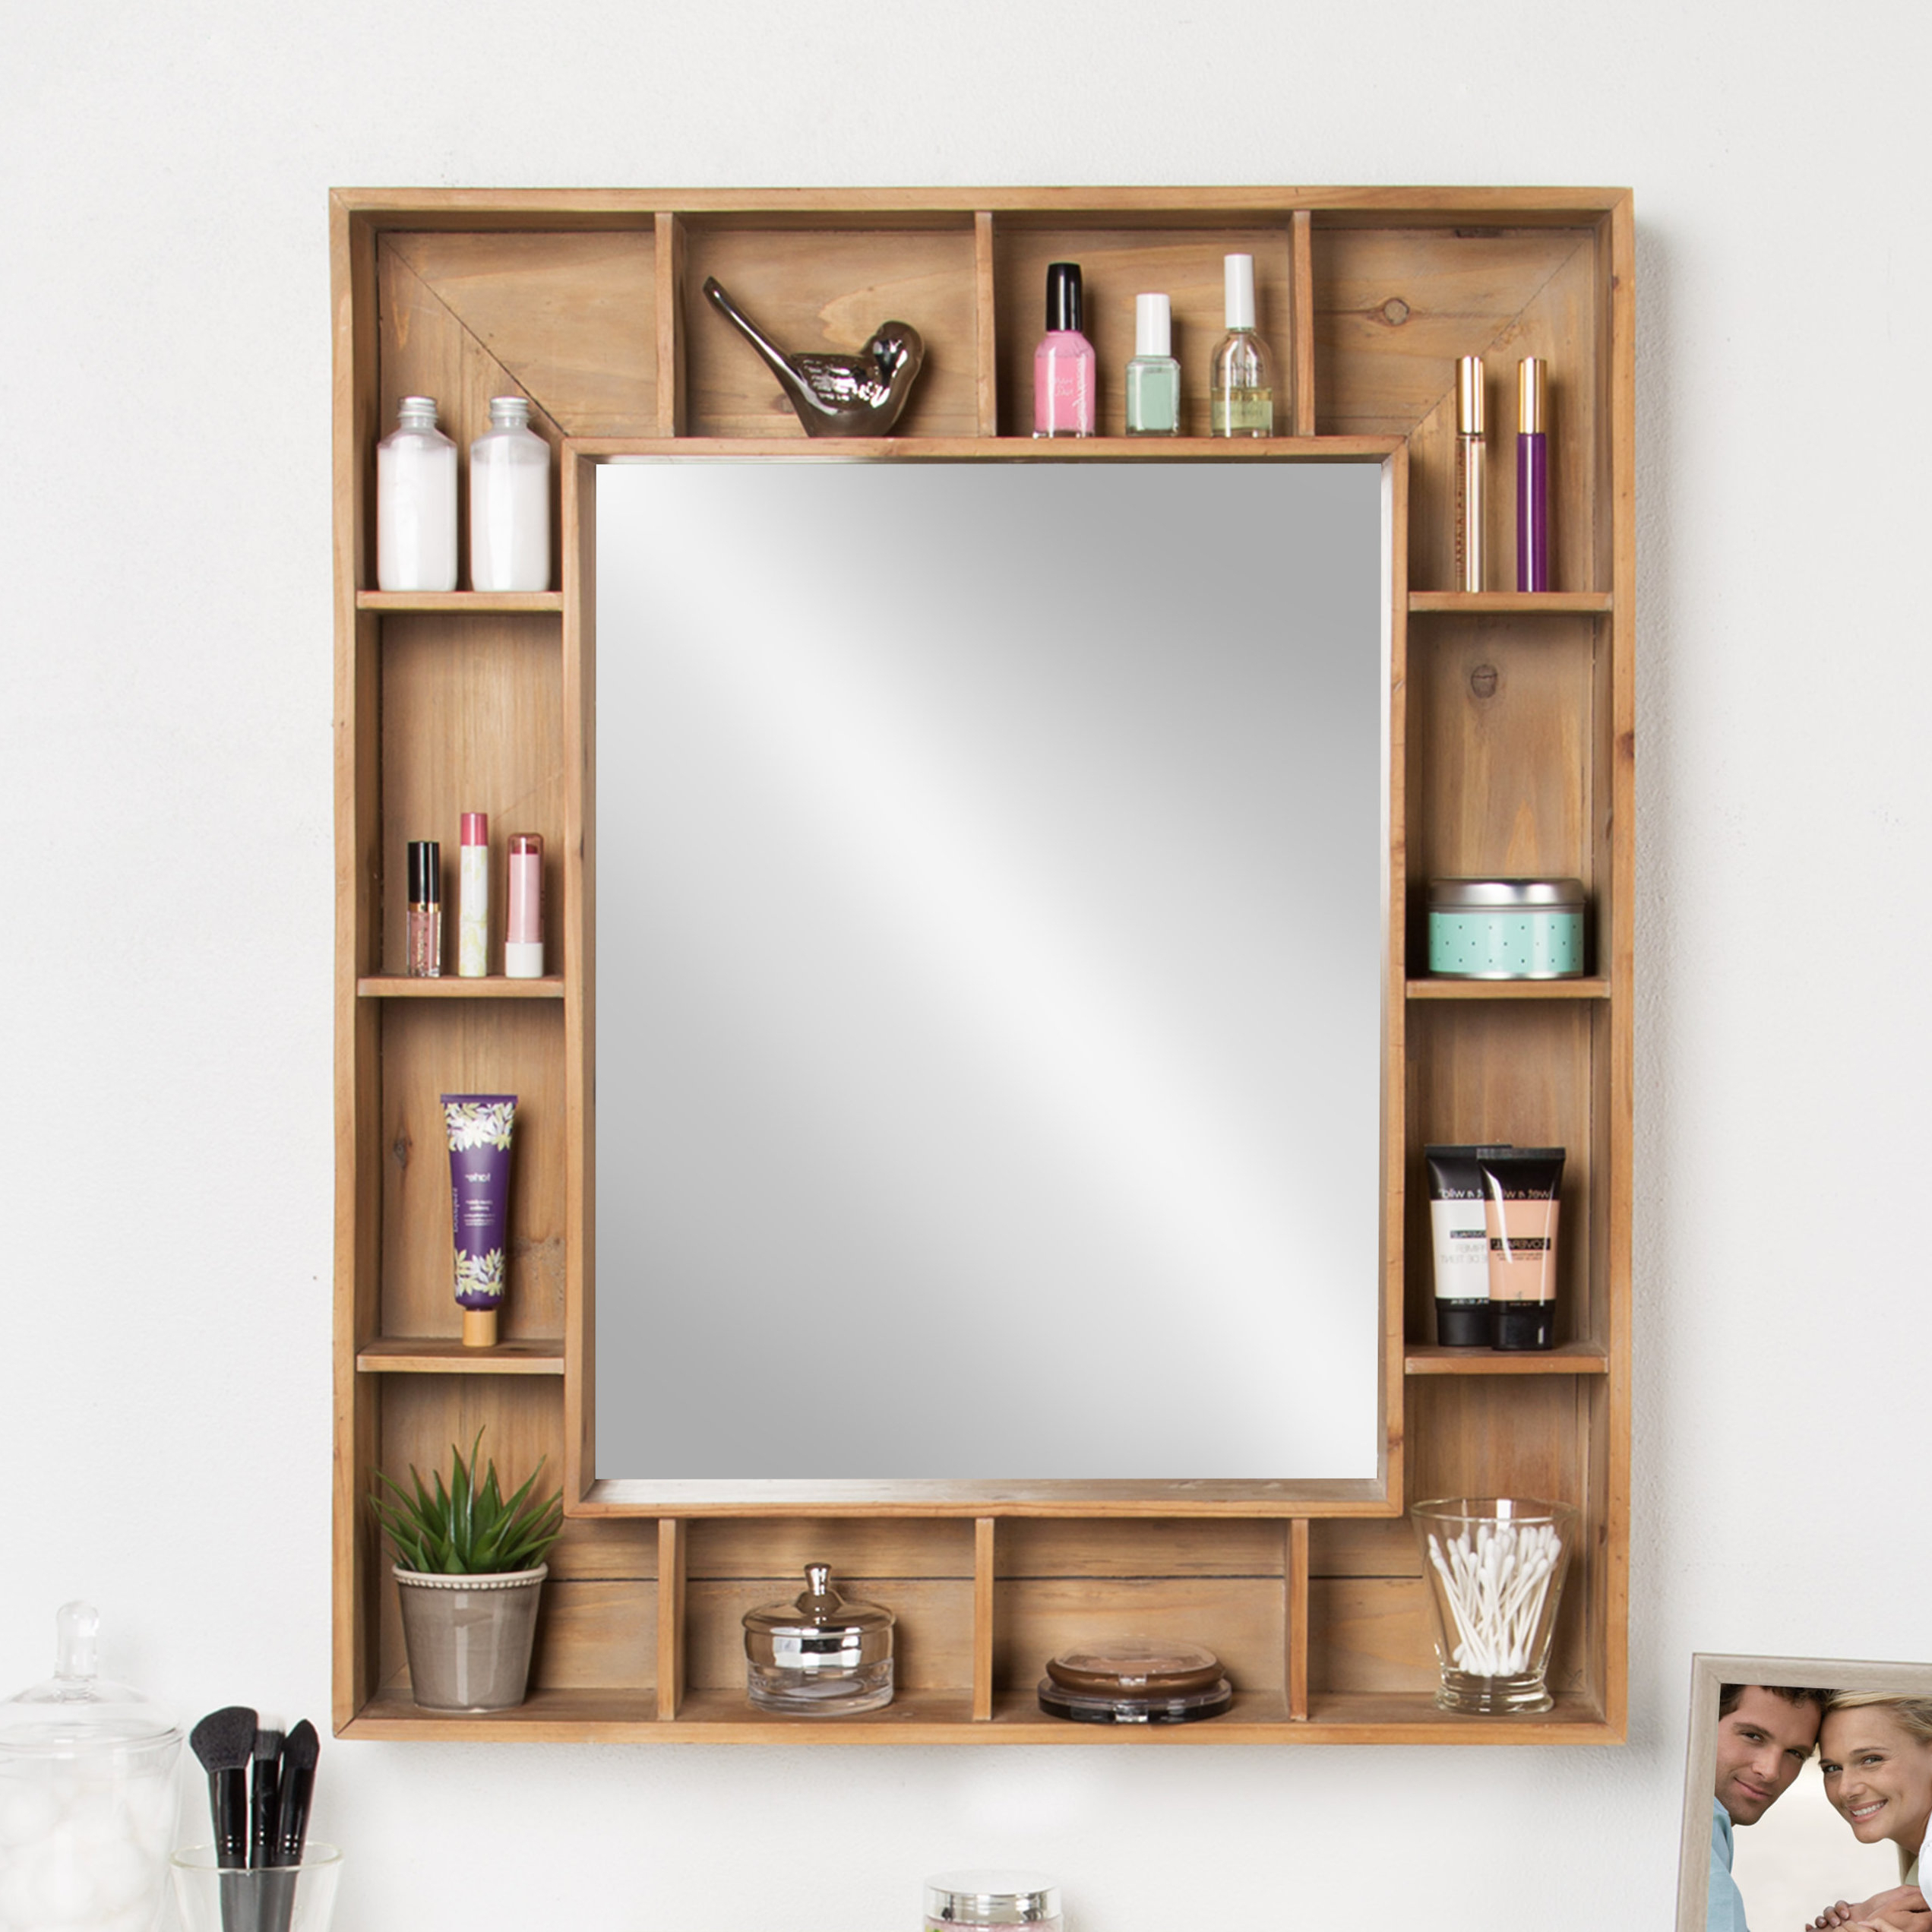 Most Current Glynis Wild West Accent Mirrors Within Swanage Rustic Wood Cubby Framed Wall Storage Accent Mirror (View 18 of 20)